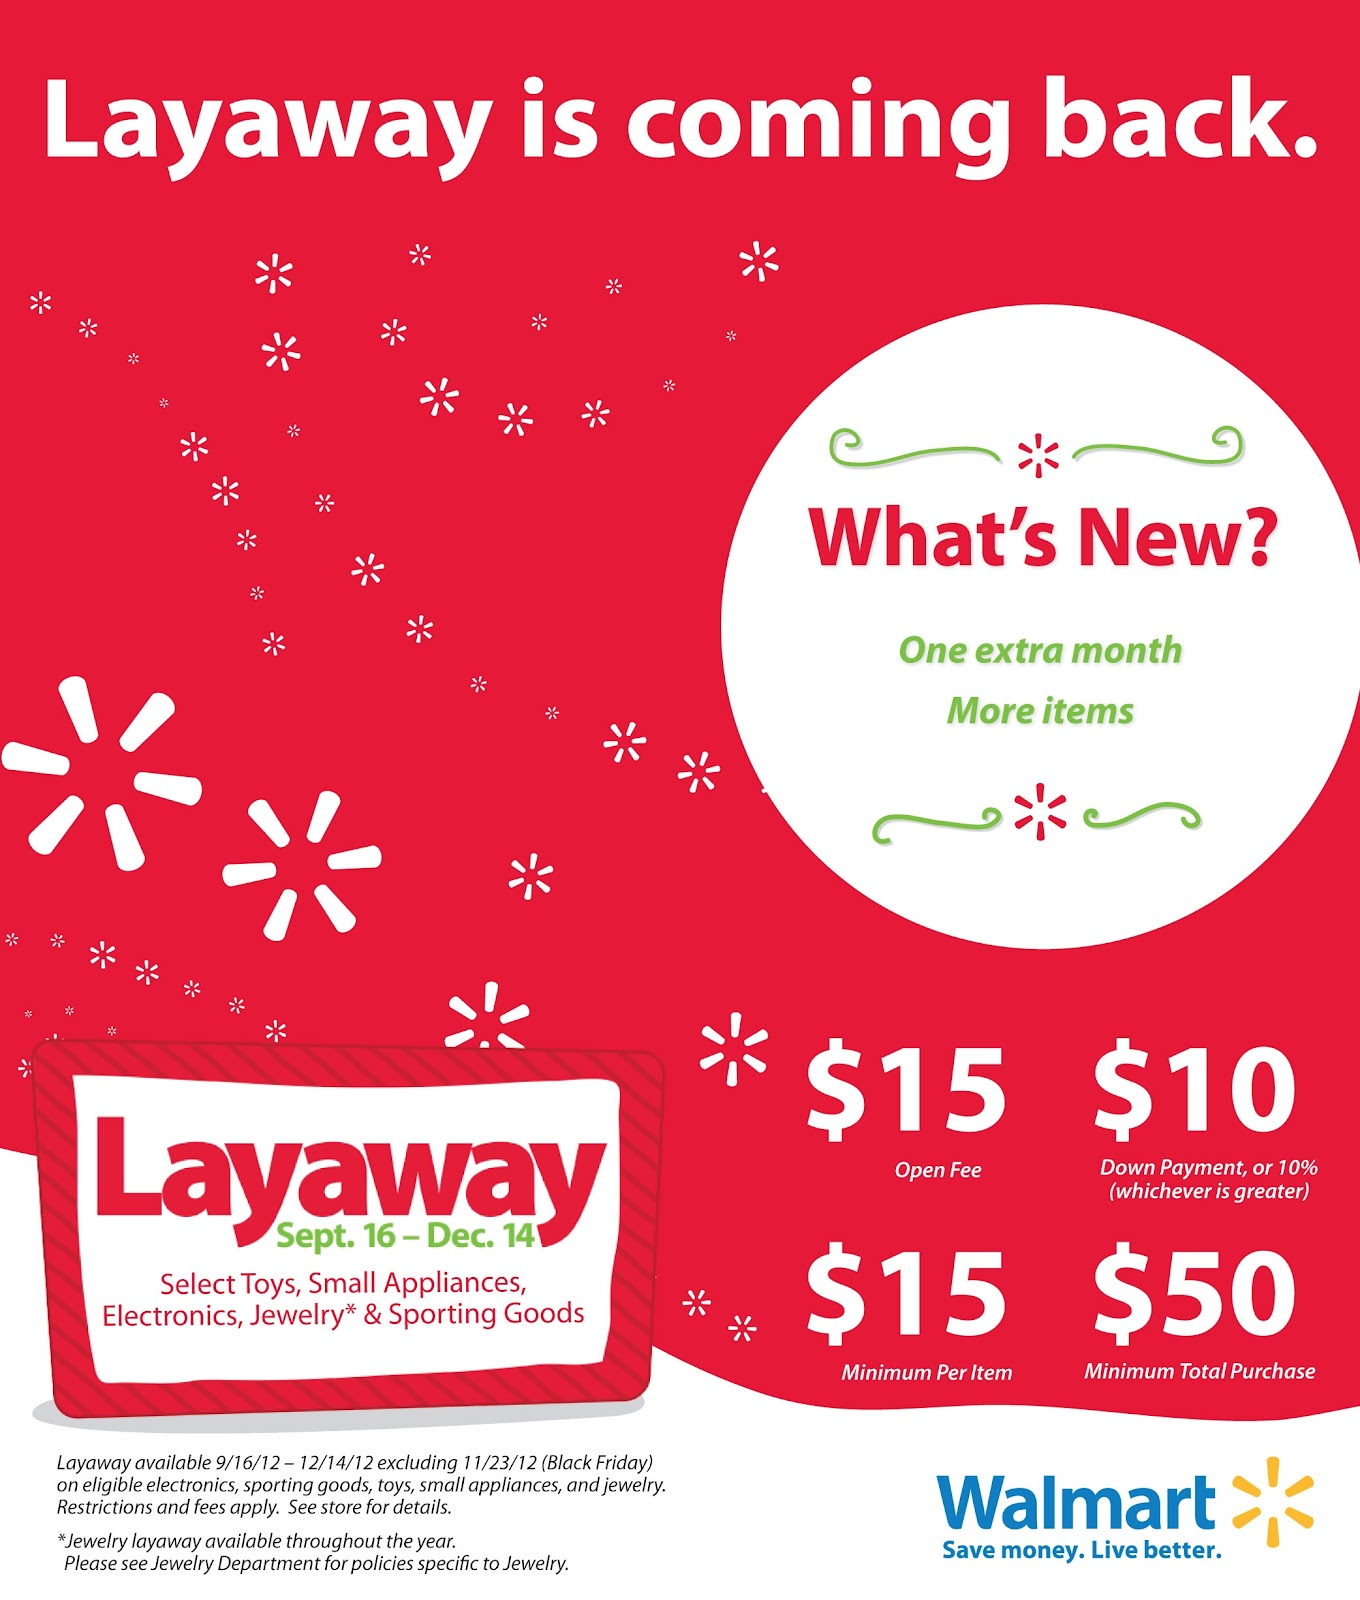 eLayaway has revolutionized the way layaway works